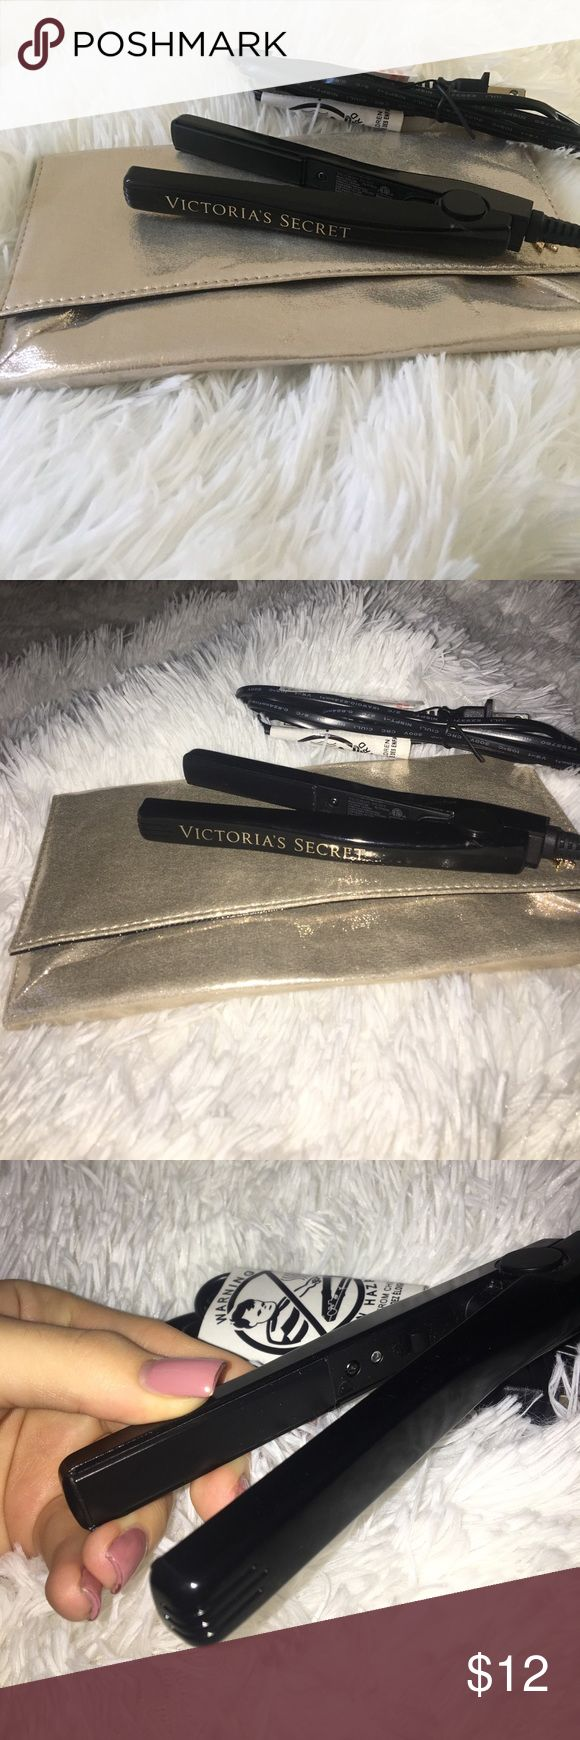 Victoria's Secret travel hair straightener Never used -- mini straightener with pouch that could also be used as a makeup bag Victoria's Secret Makeup